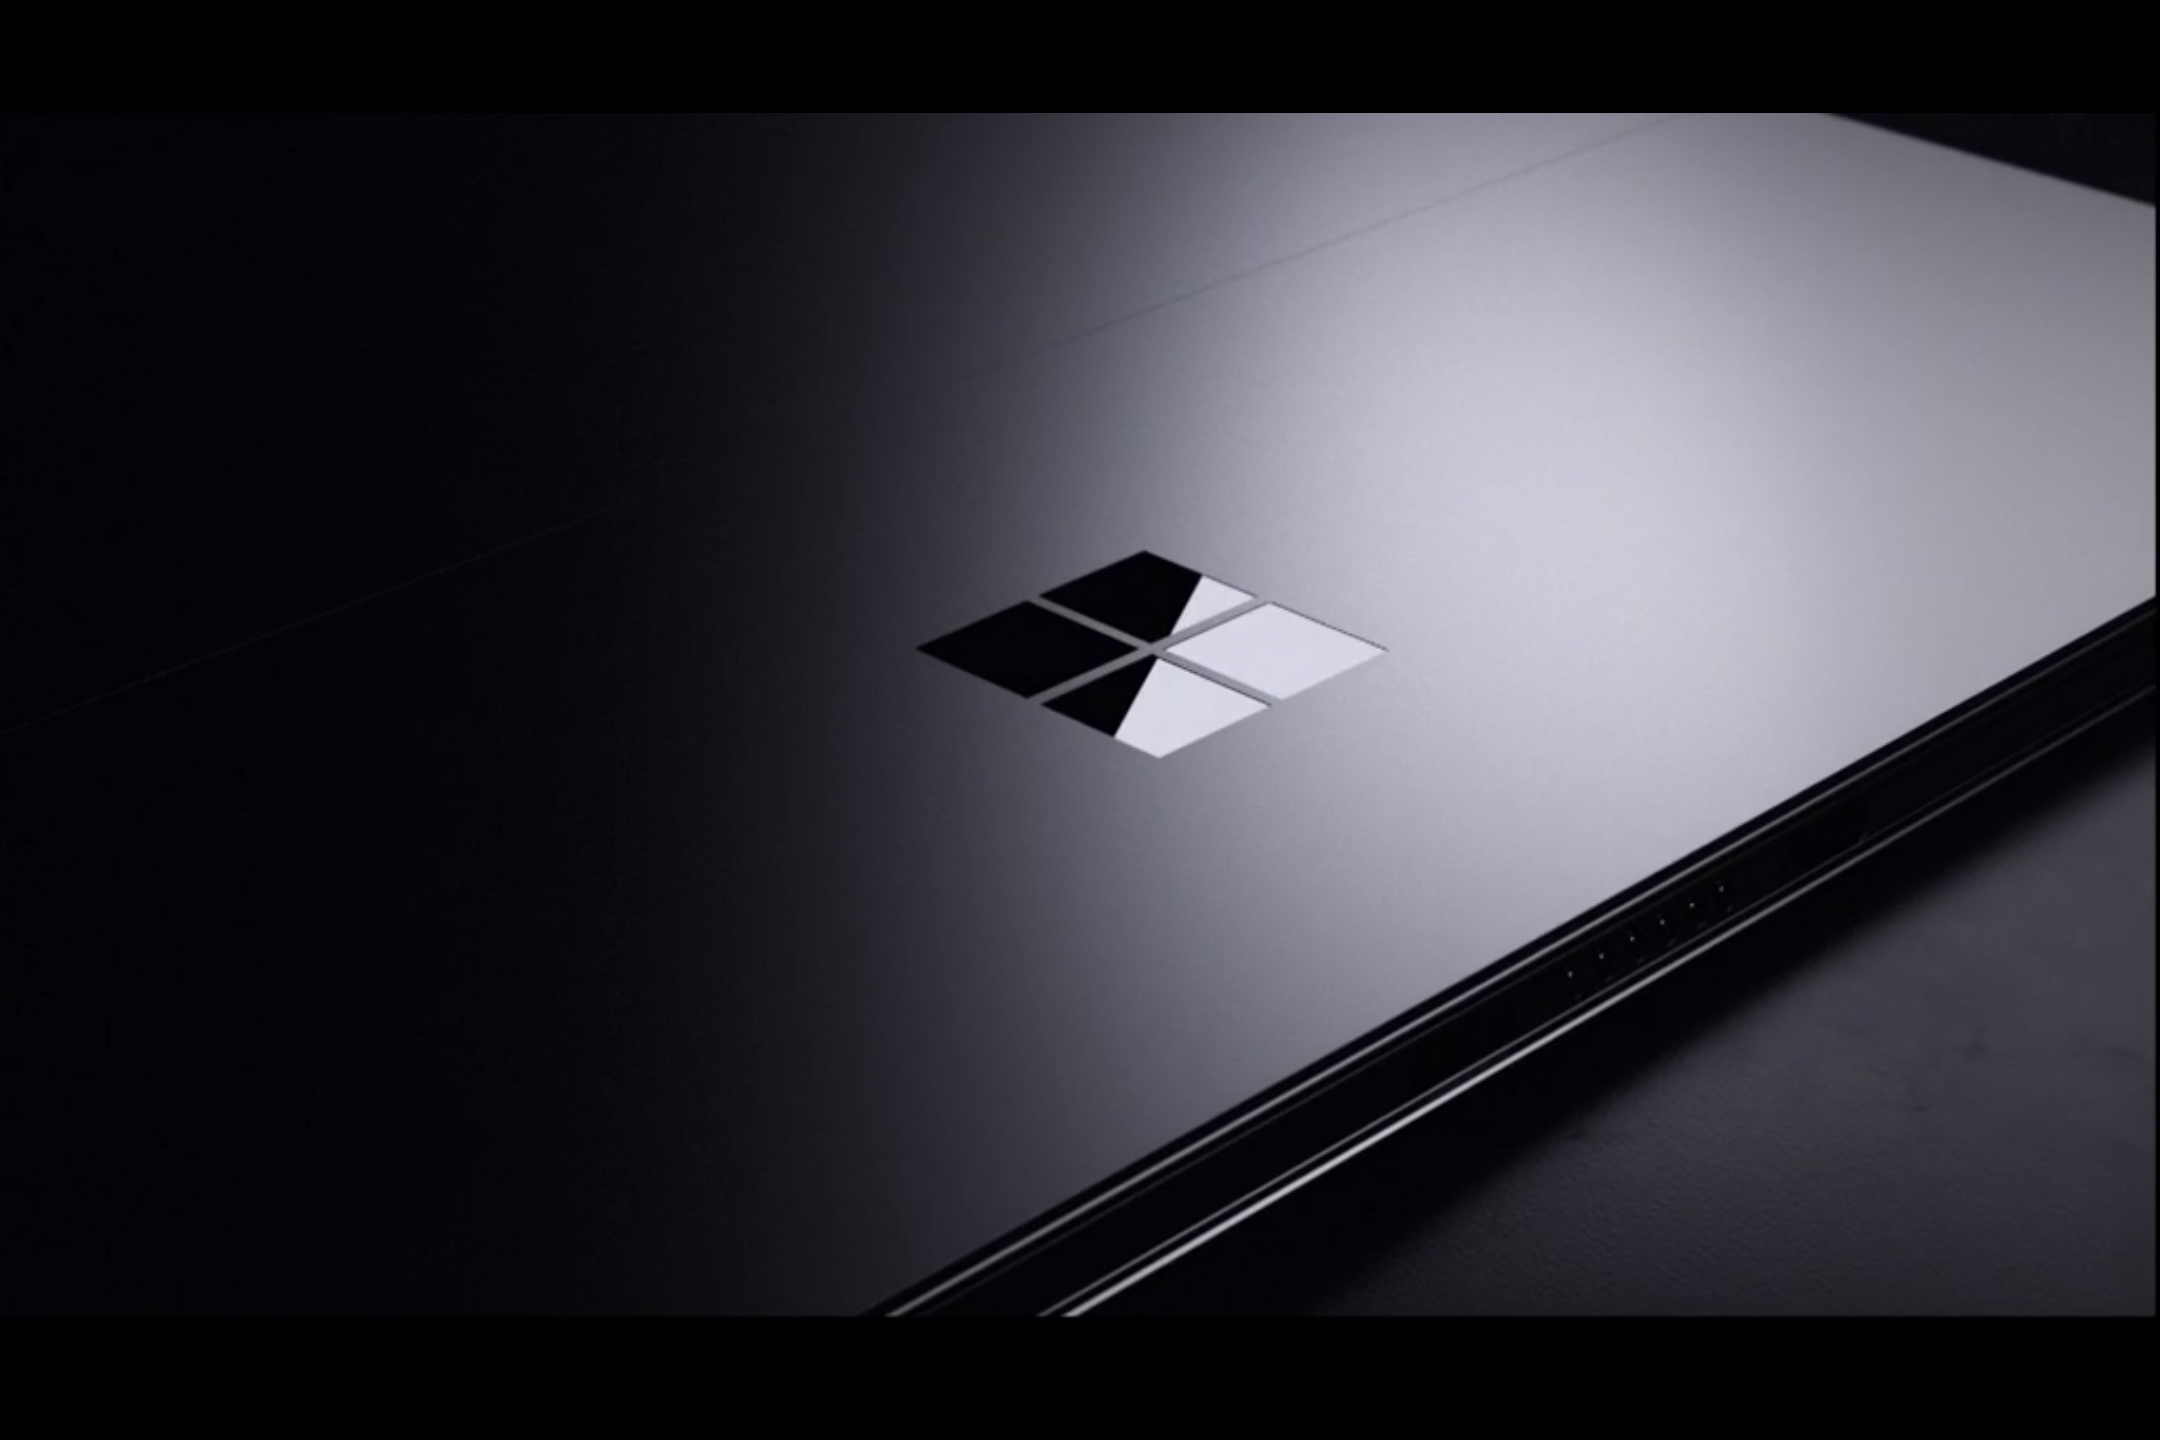 Microsoft's $899 Surface Pro 4 is thin and fast, with Skylake and an ...